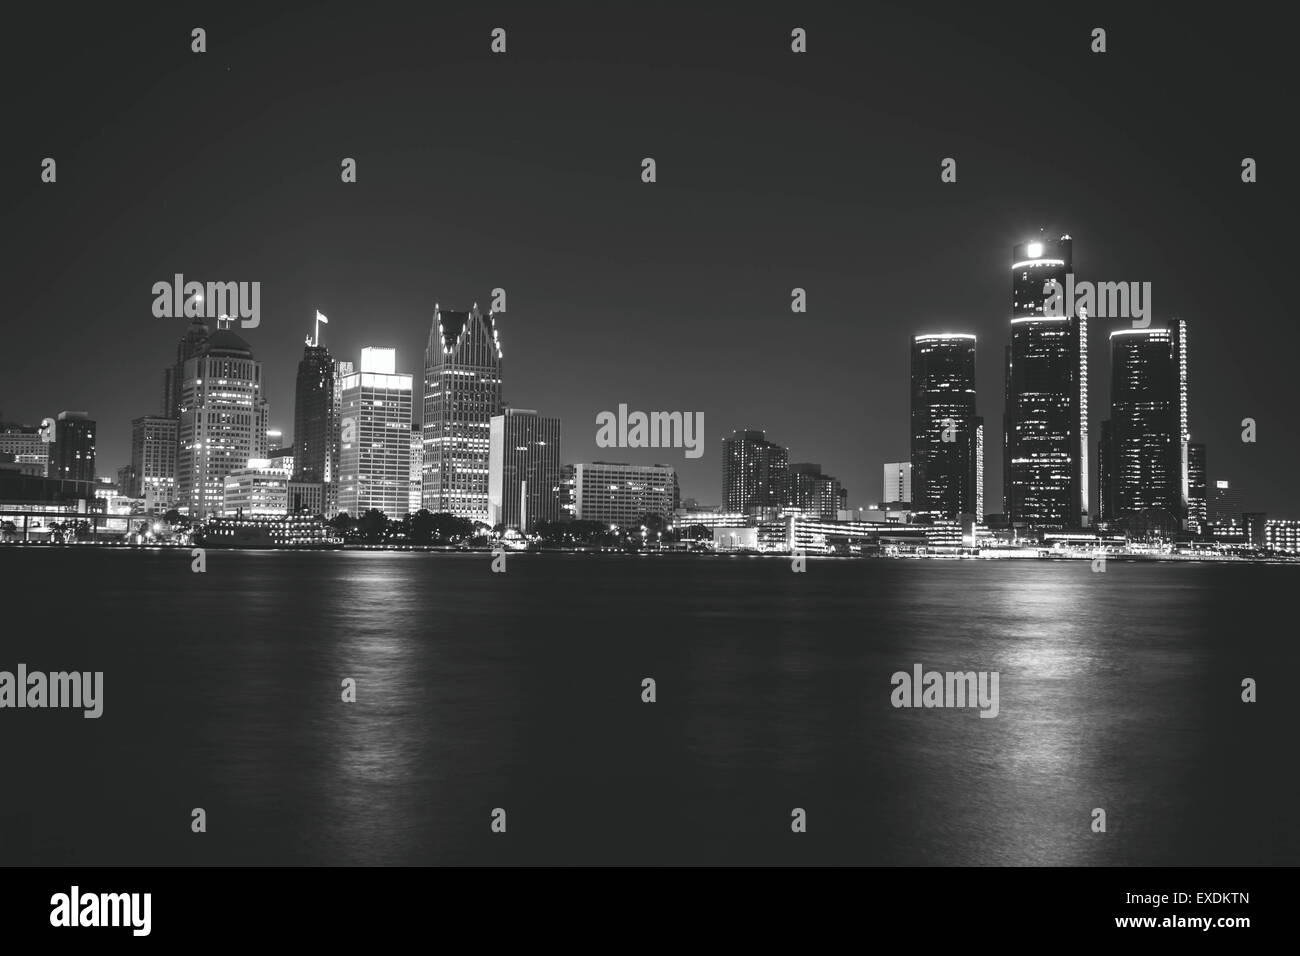 Detroit at Night Black and White - Stock Image